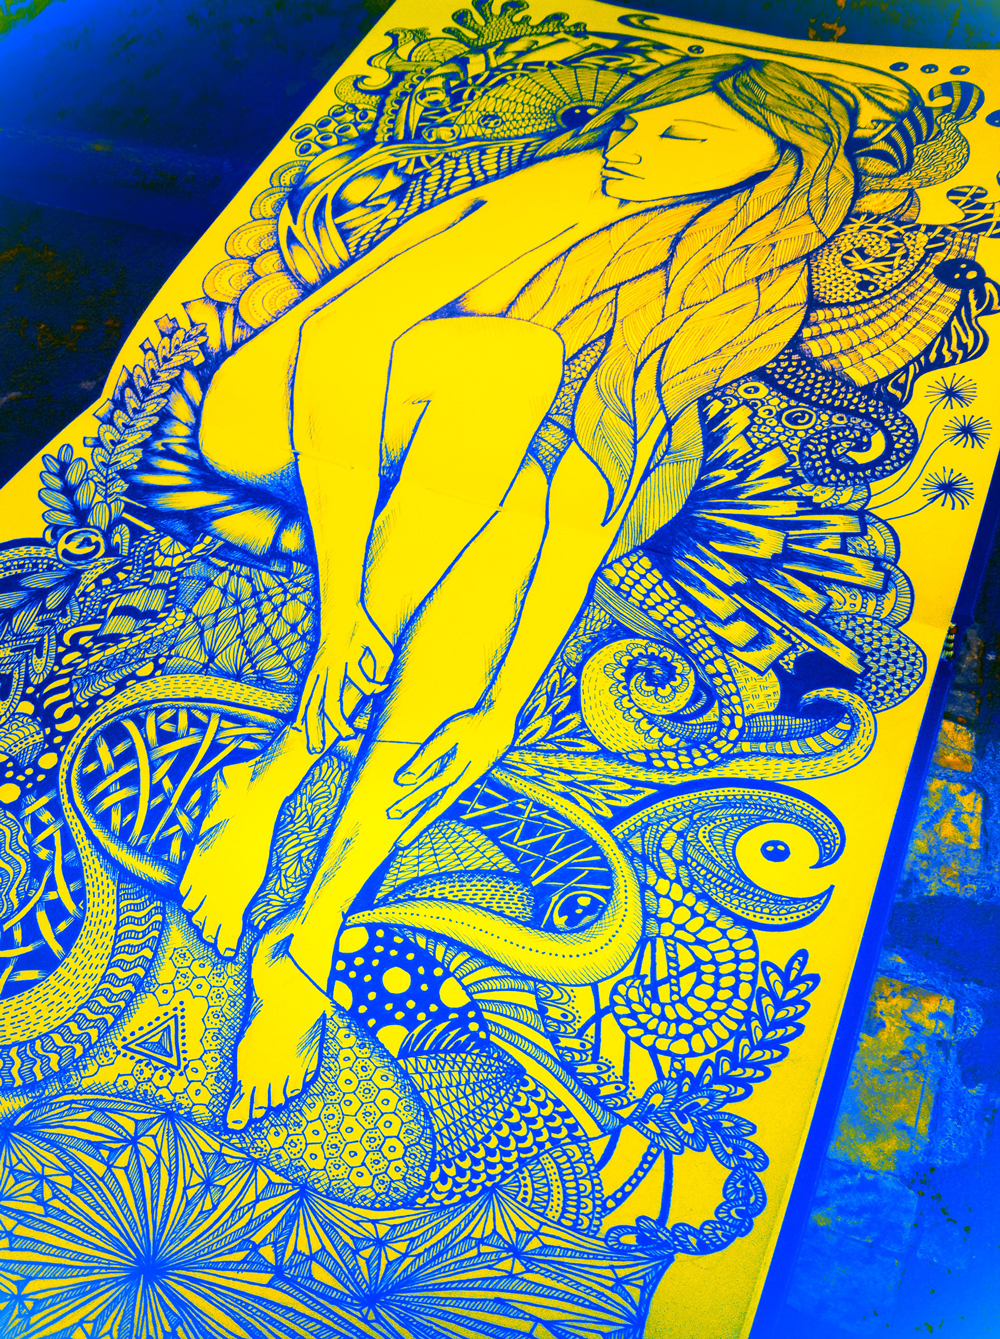 lady illustration in blue and yellow